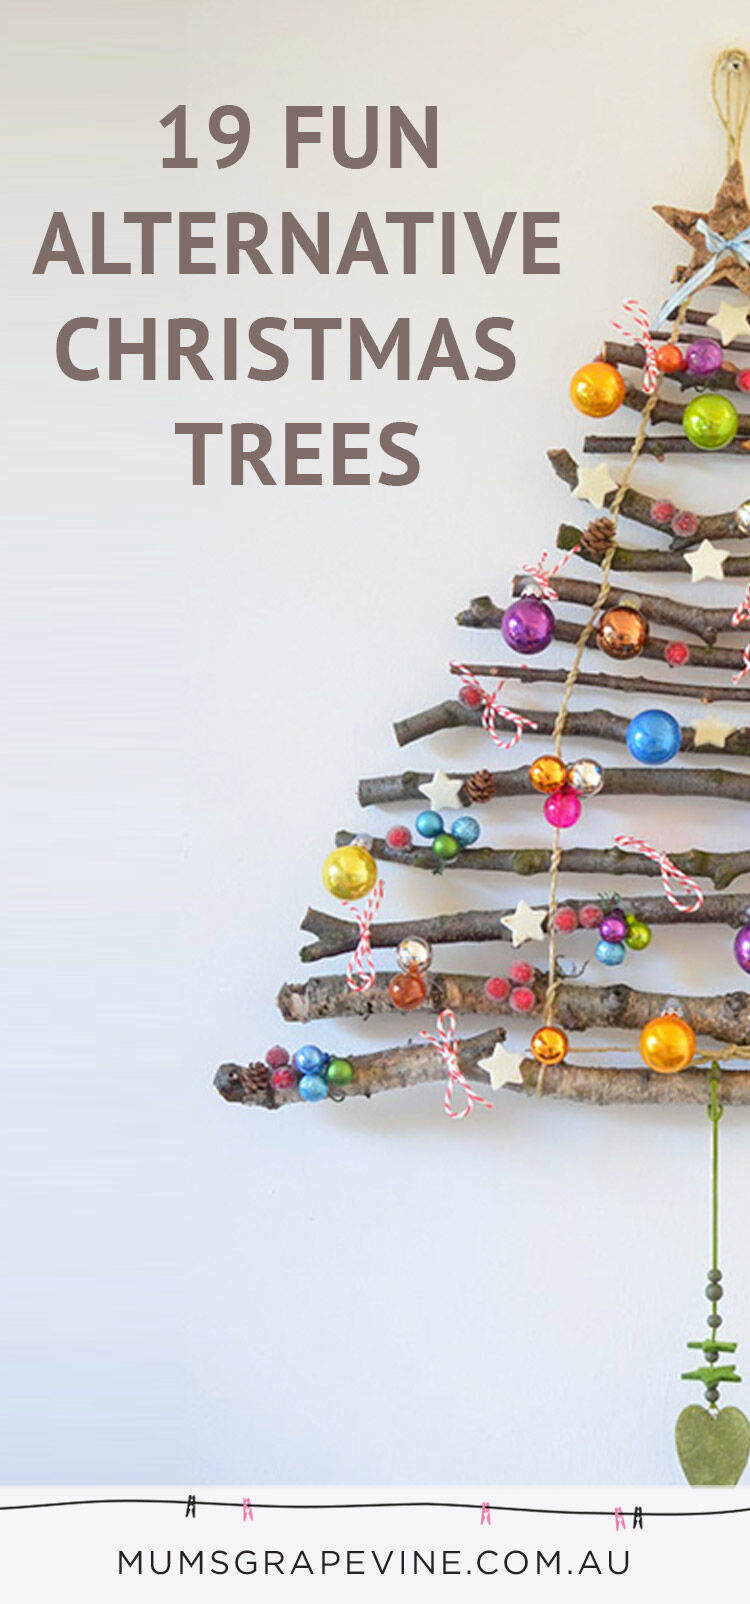 19 Alternative Christmas Trees